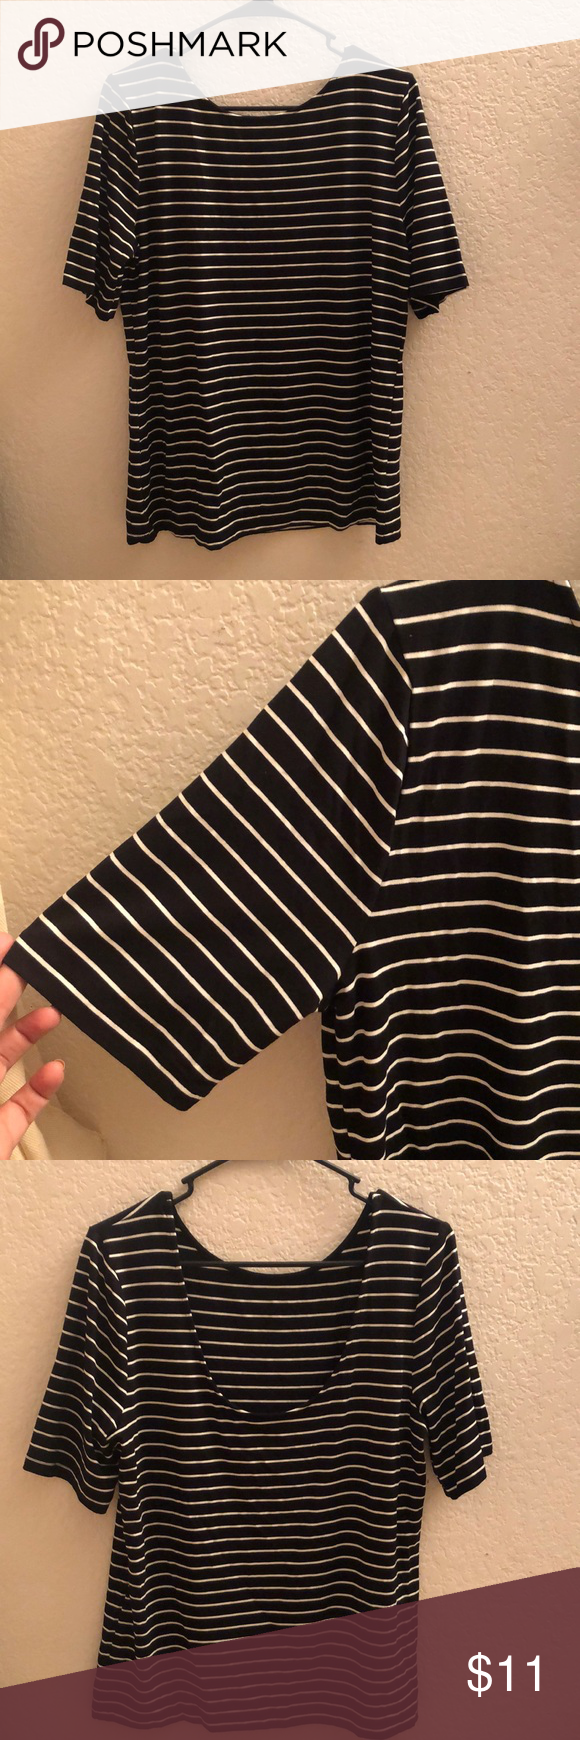 T Shirt Black Shirt With White Stripes And Sleeves Goes Down To About Mid Upper Arm In The Back Of Shirt Has A Scope And Is Form Fi Black Shirt Shirts T